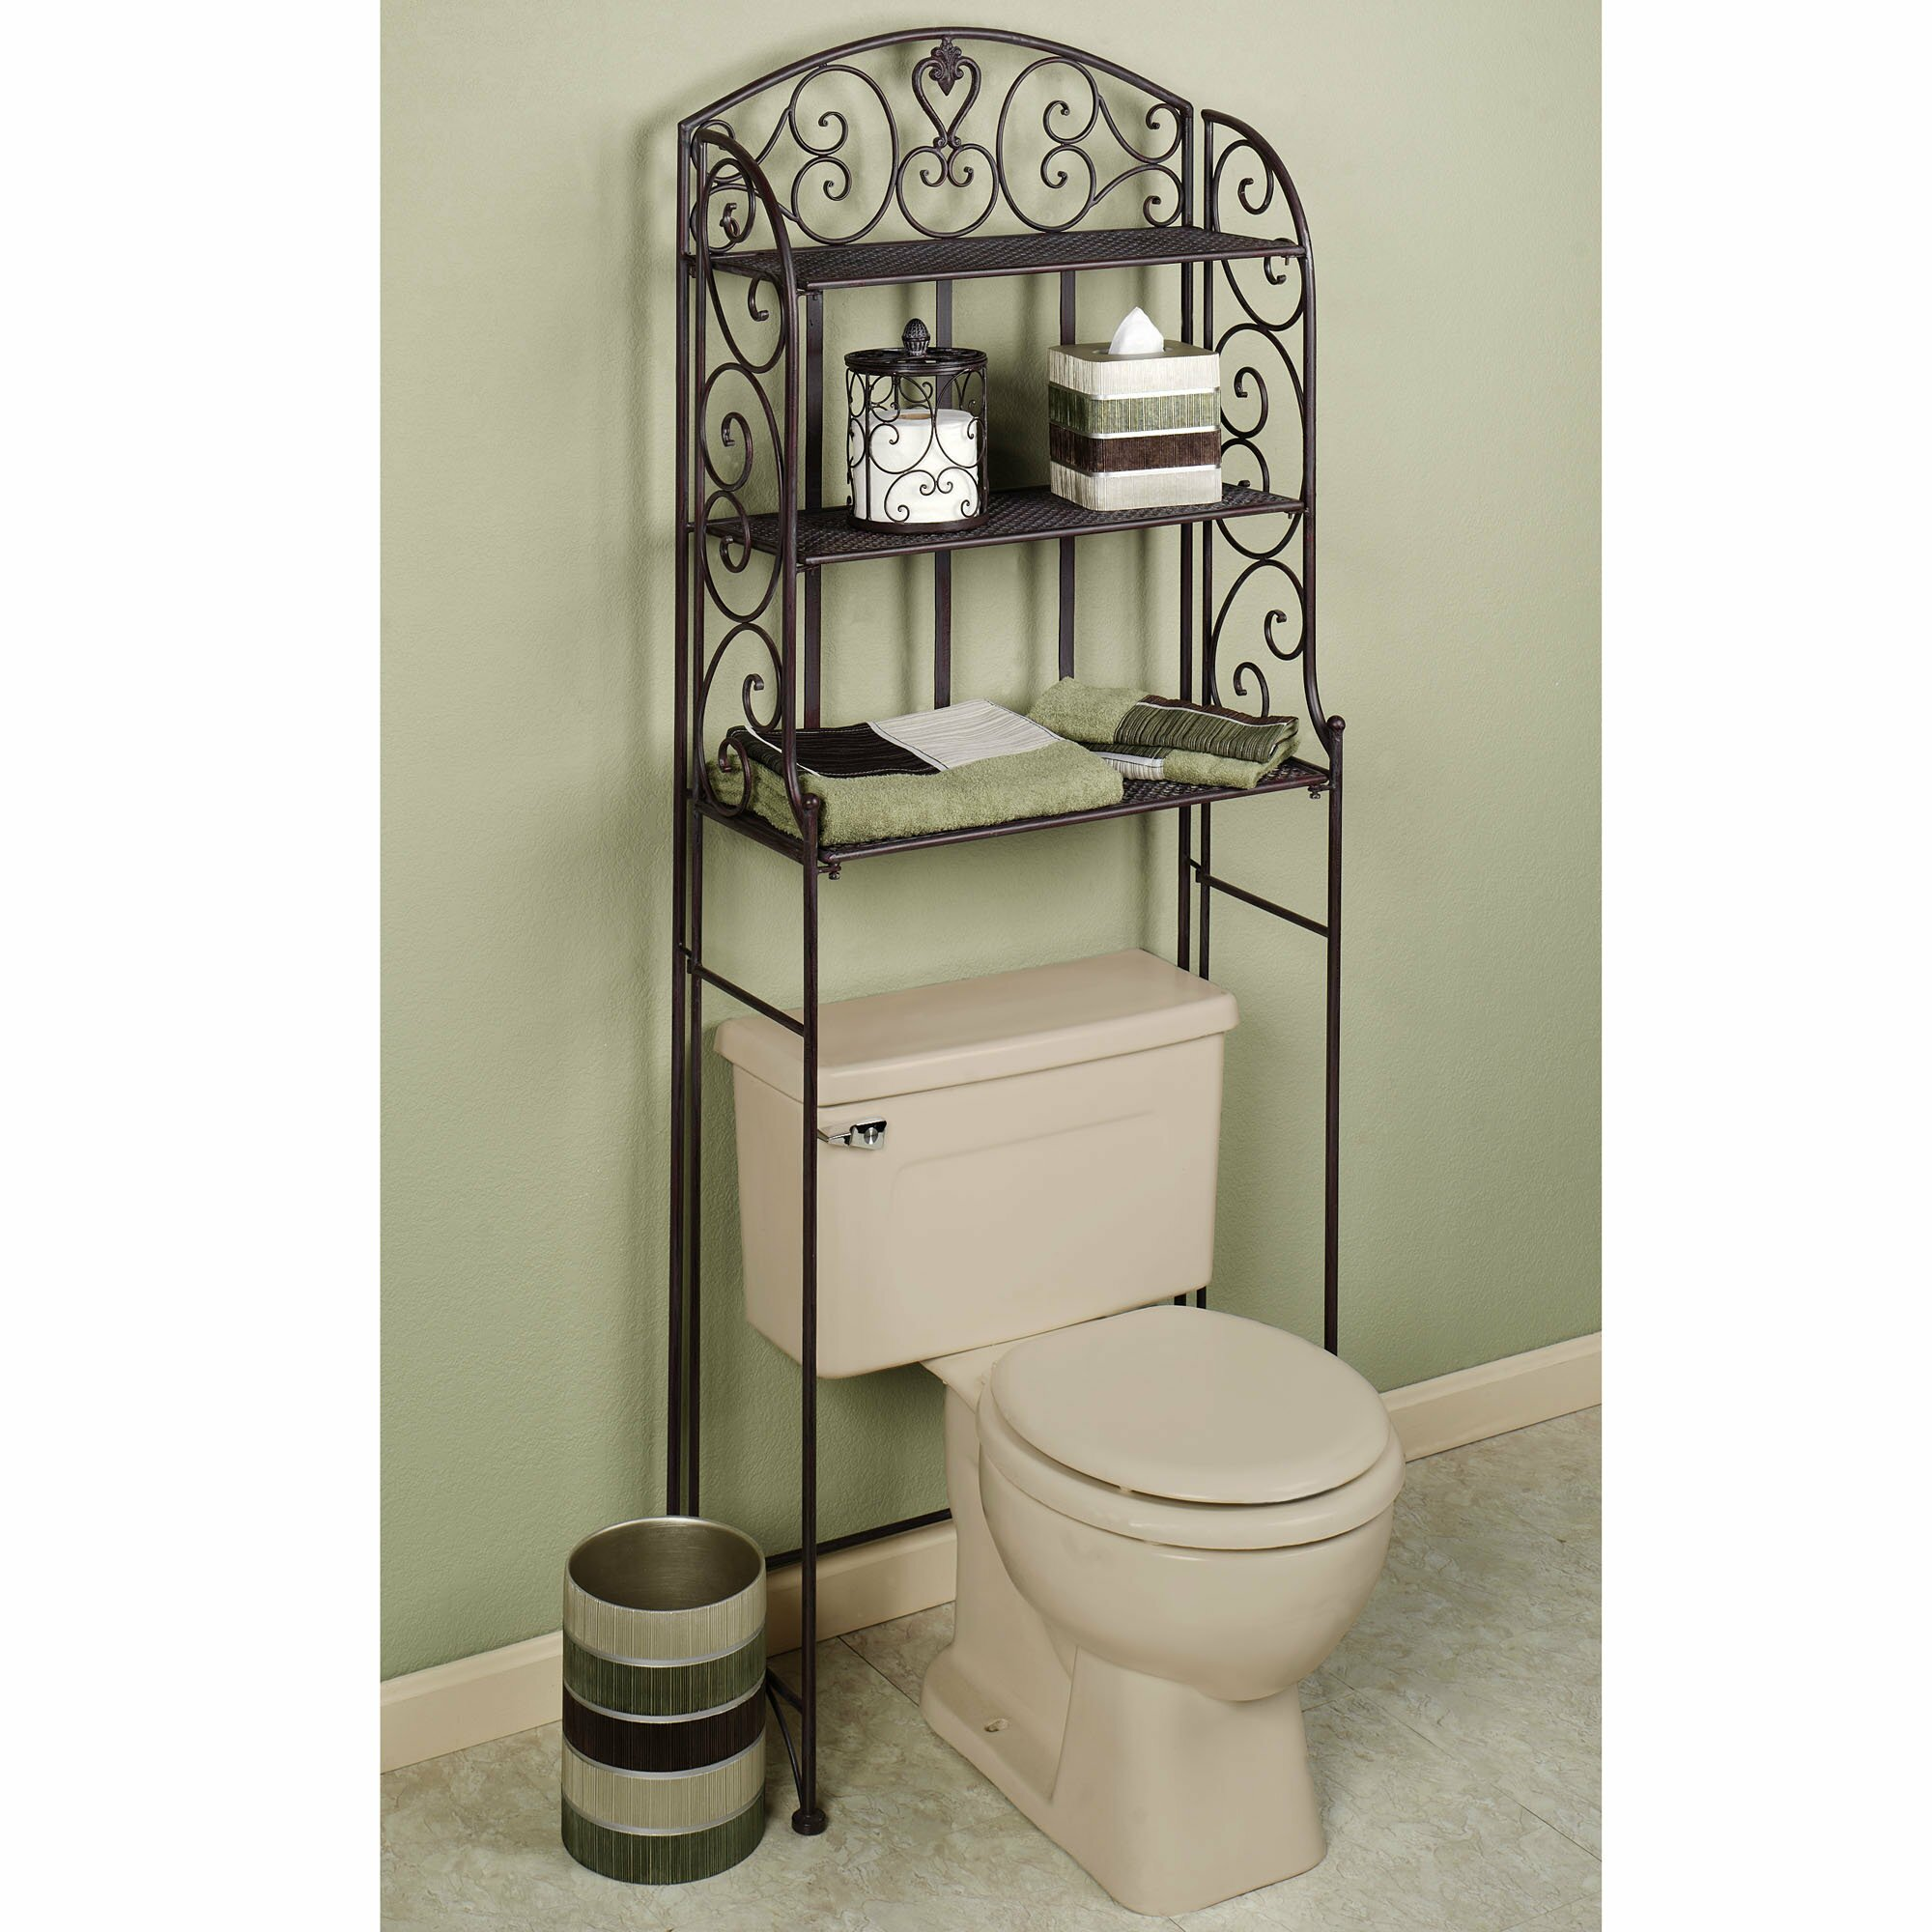 Oak Bathroom Space Saver | Toilet Etagere | Toilet Topper Cabinet